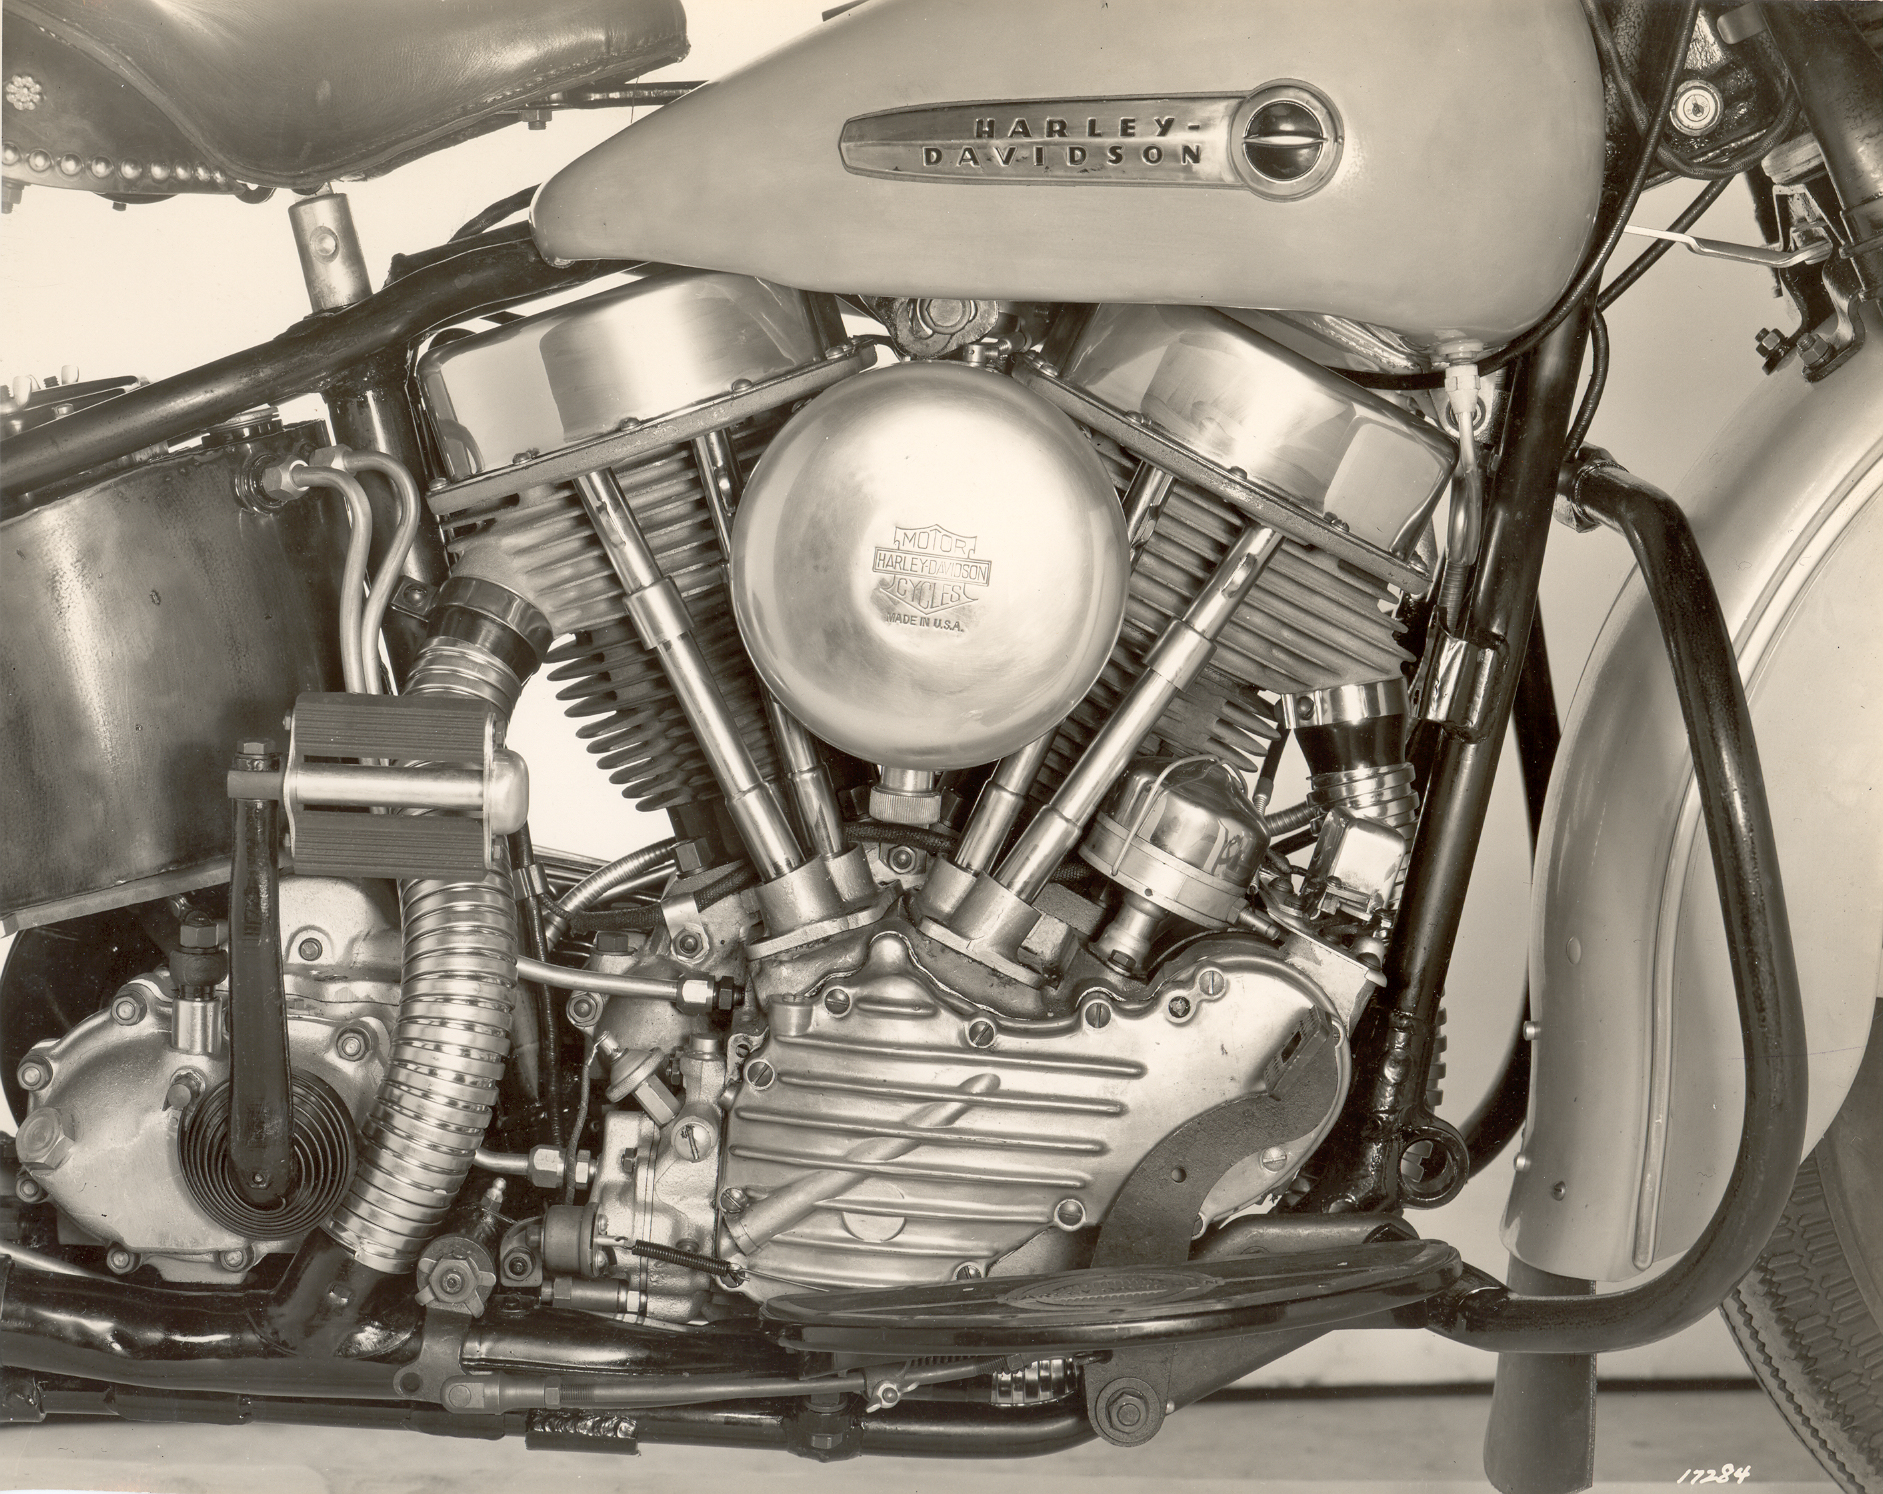 Harley-Davidson Twin Cam V-Twin Motorcycles - HISTORY OF THE